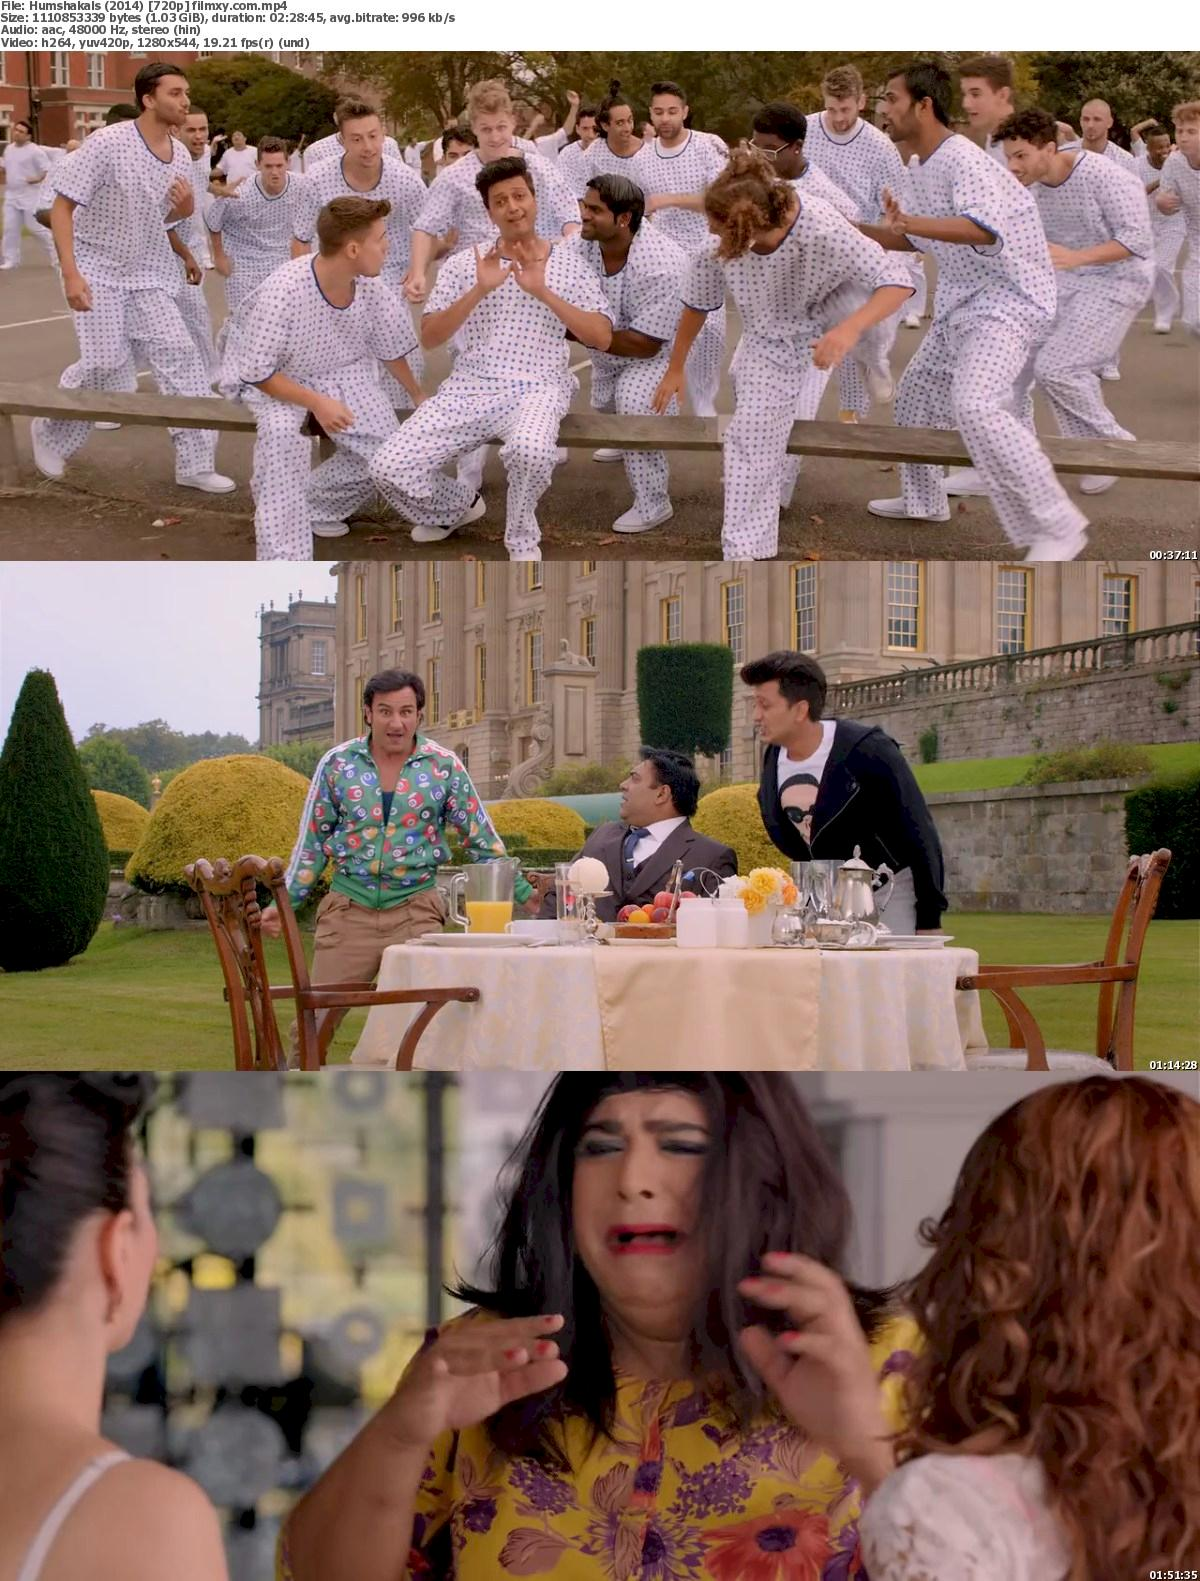 Humshakals (2014) 720p & 1080p Bluray Free Download 720p Screenshot